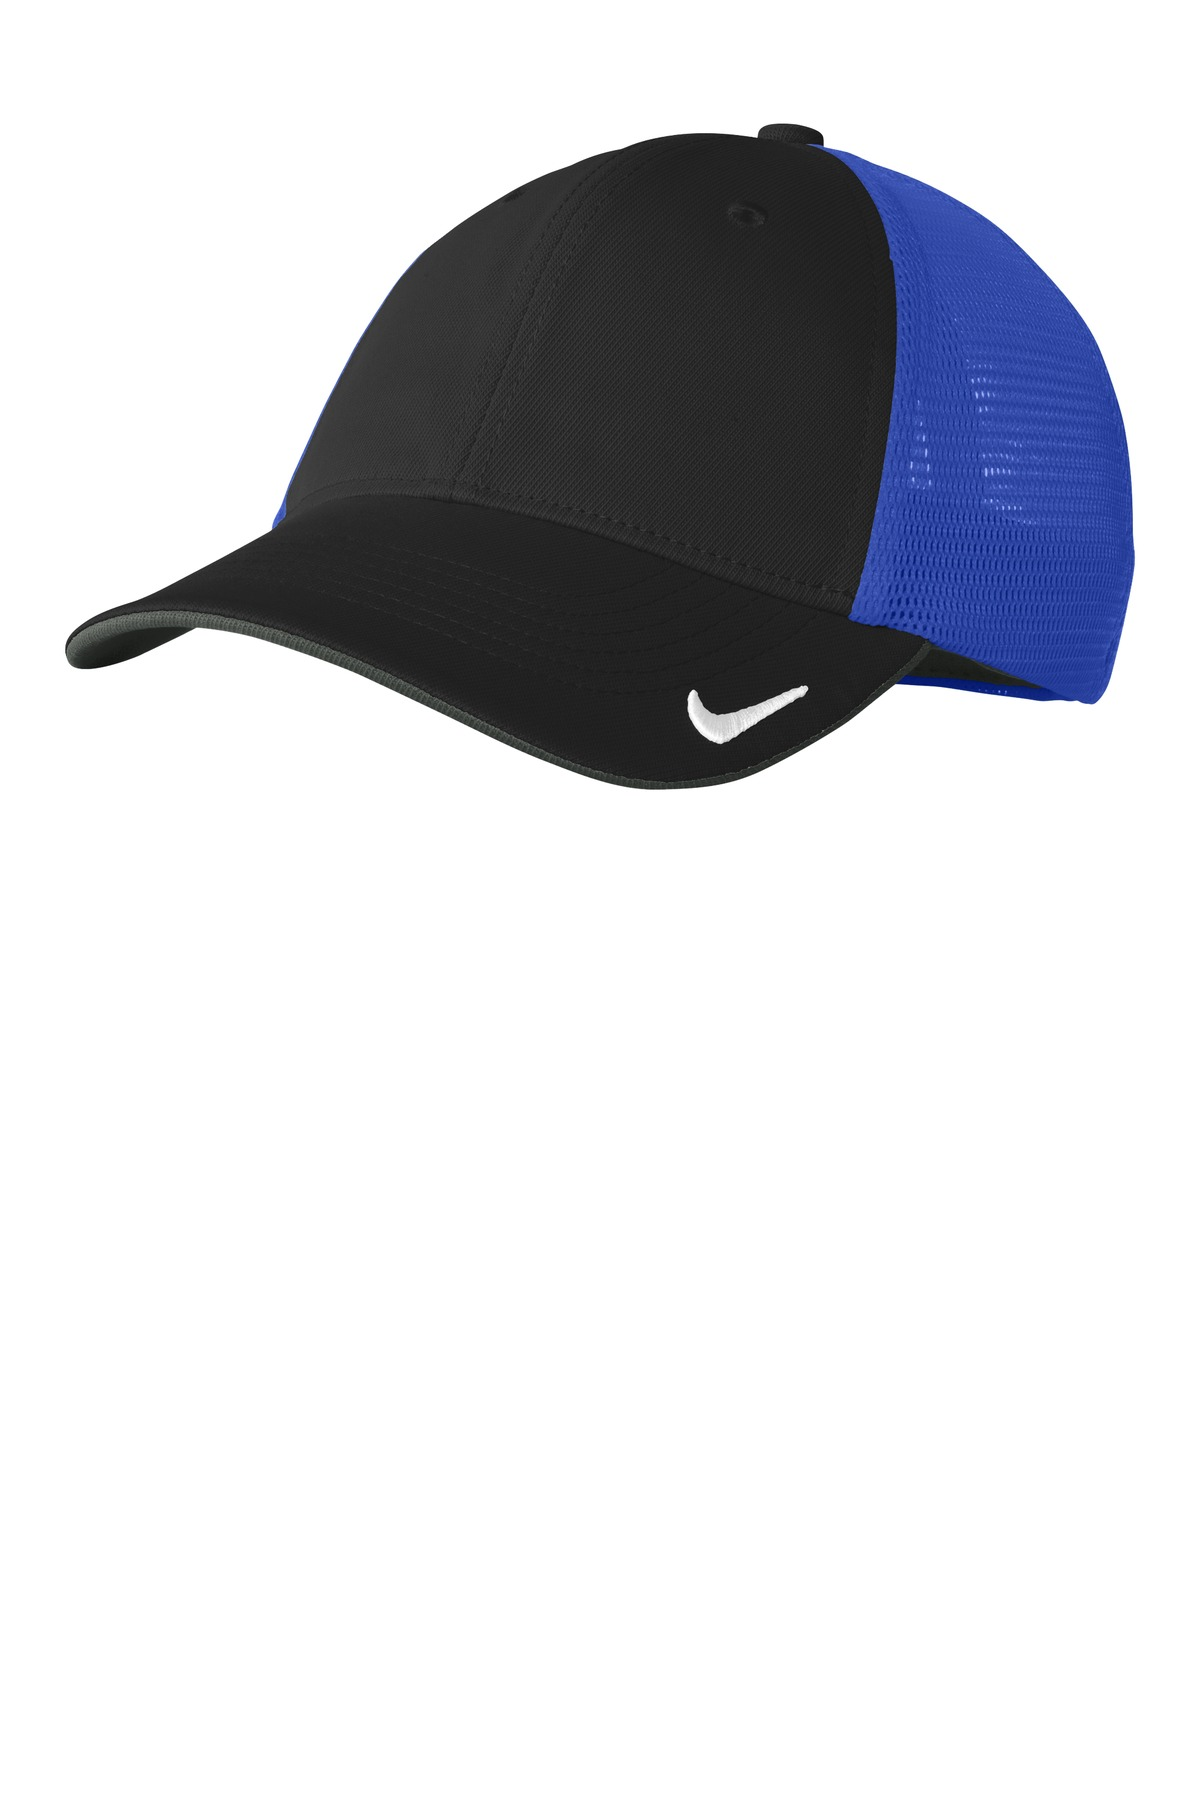 Nike Dri-FIT Mesh Back Cap. NKAO9293 - Black/ Game Royal